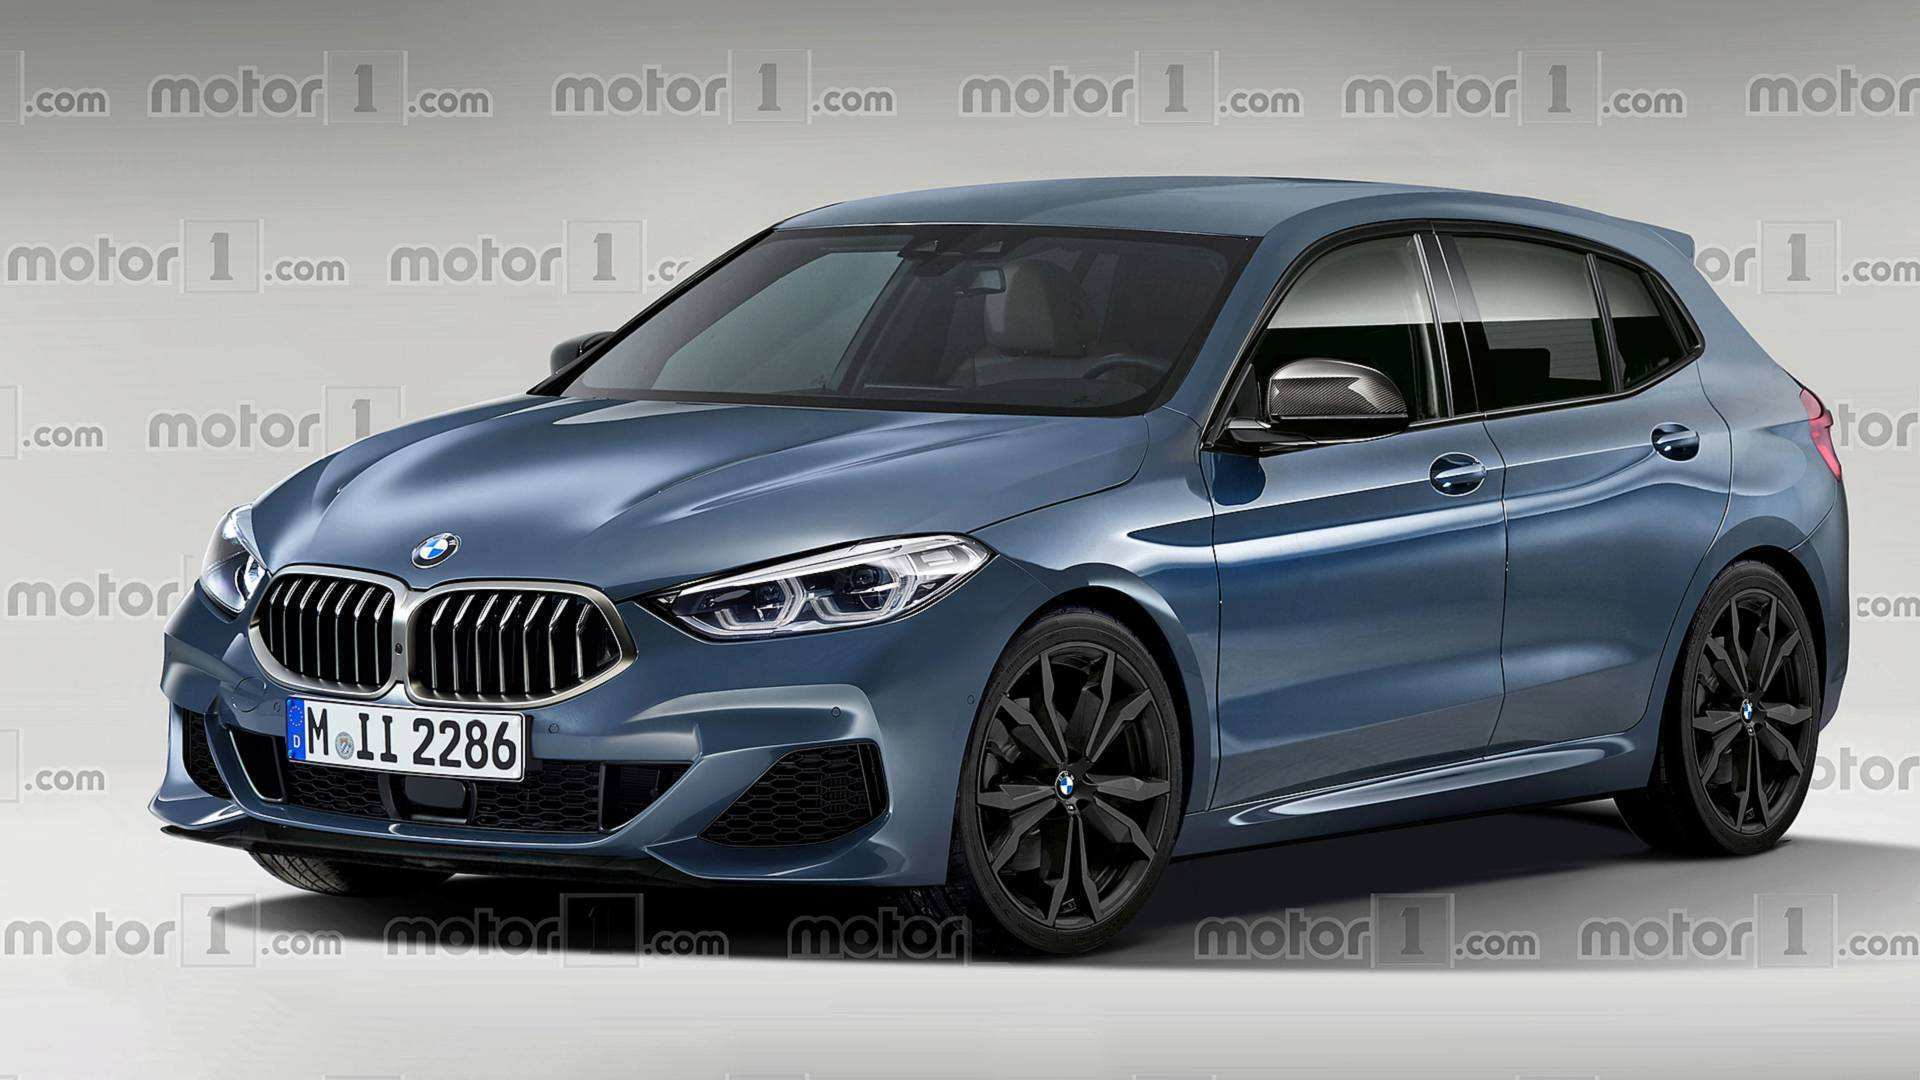 43 Gallery of 2019 Bmw 1 Series Exterior by 2019 Bmw 1 Series